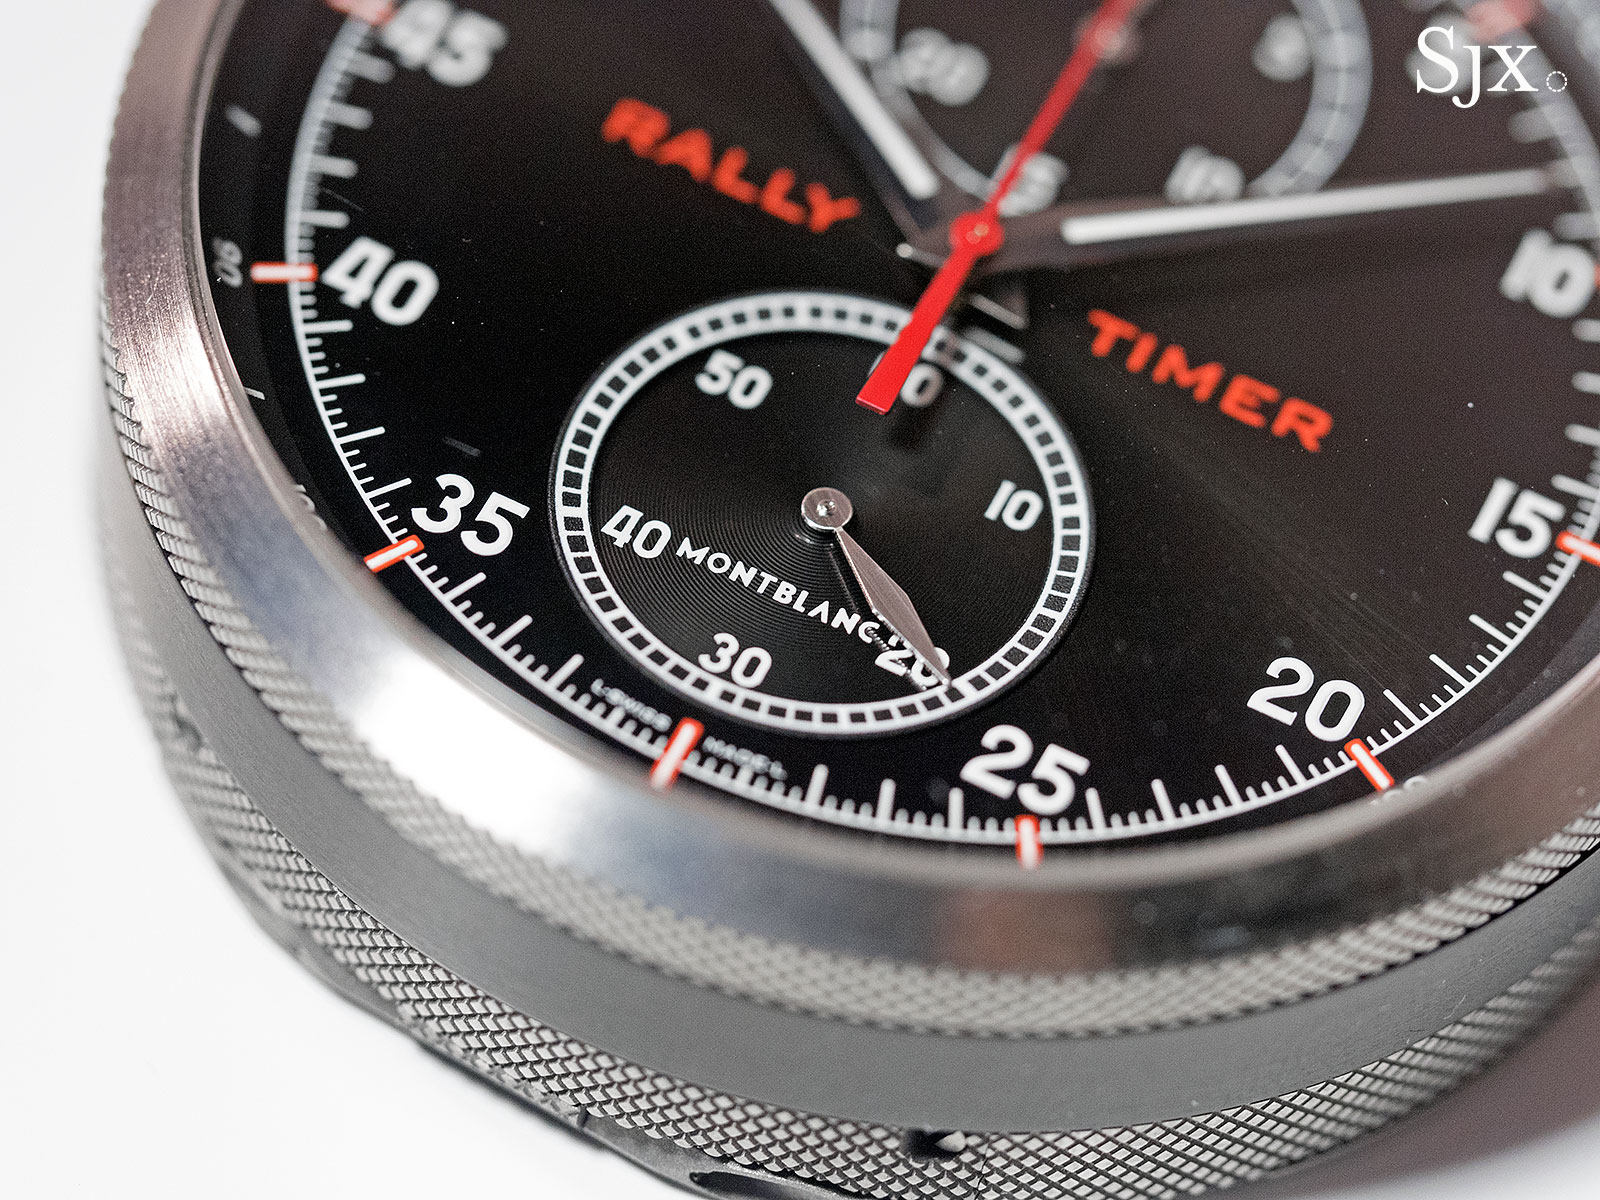 Montblanc TimeWalker Chronograph Rally Timer Counter-7